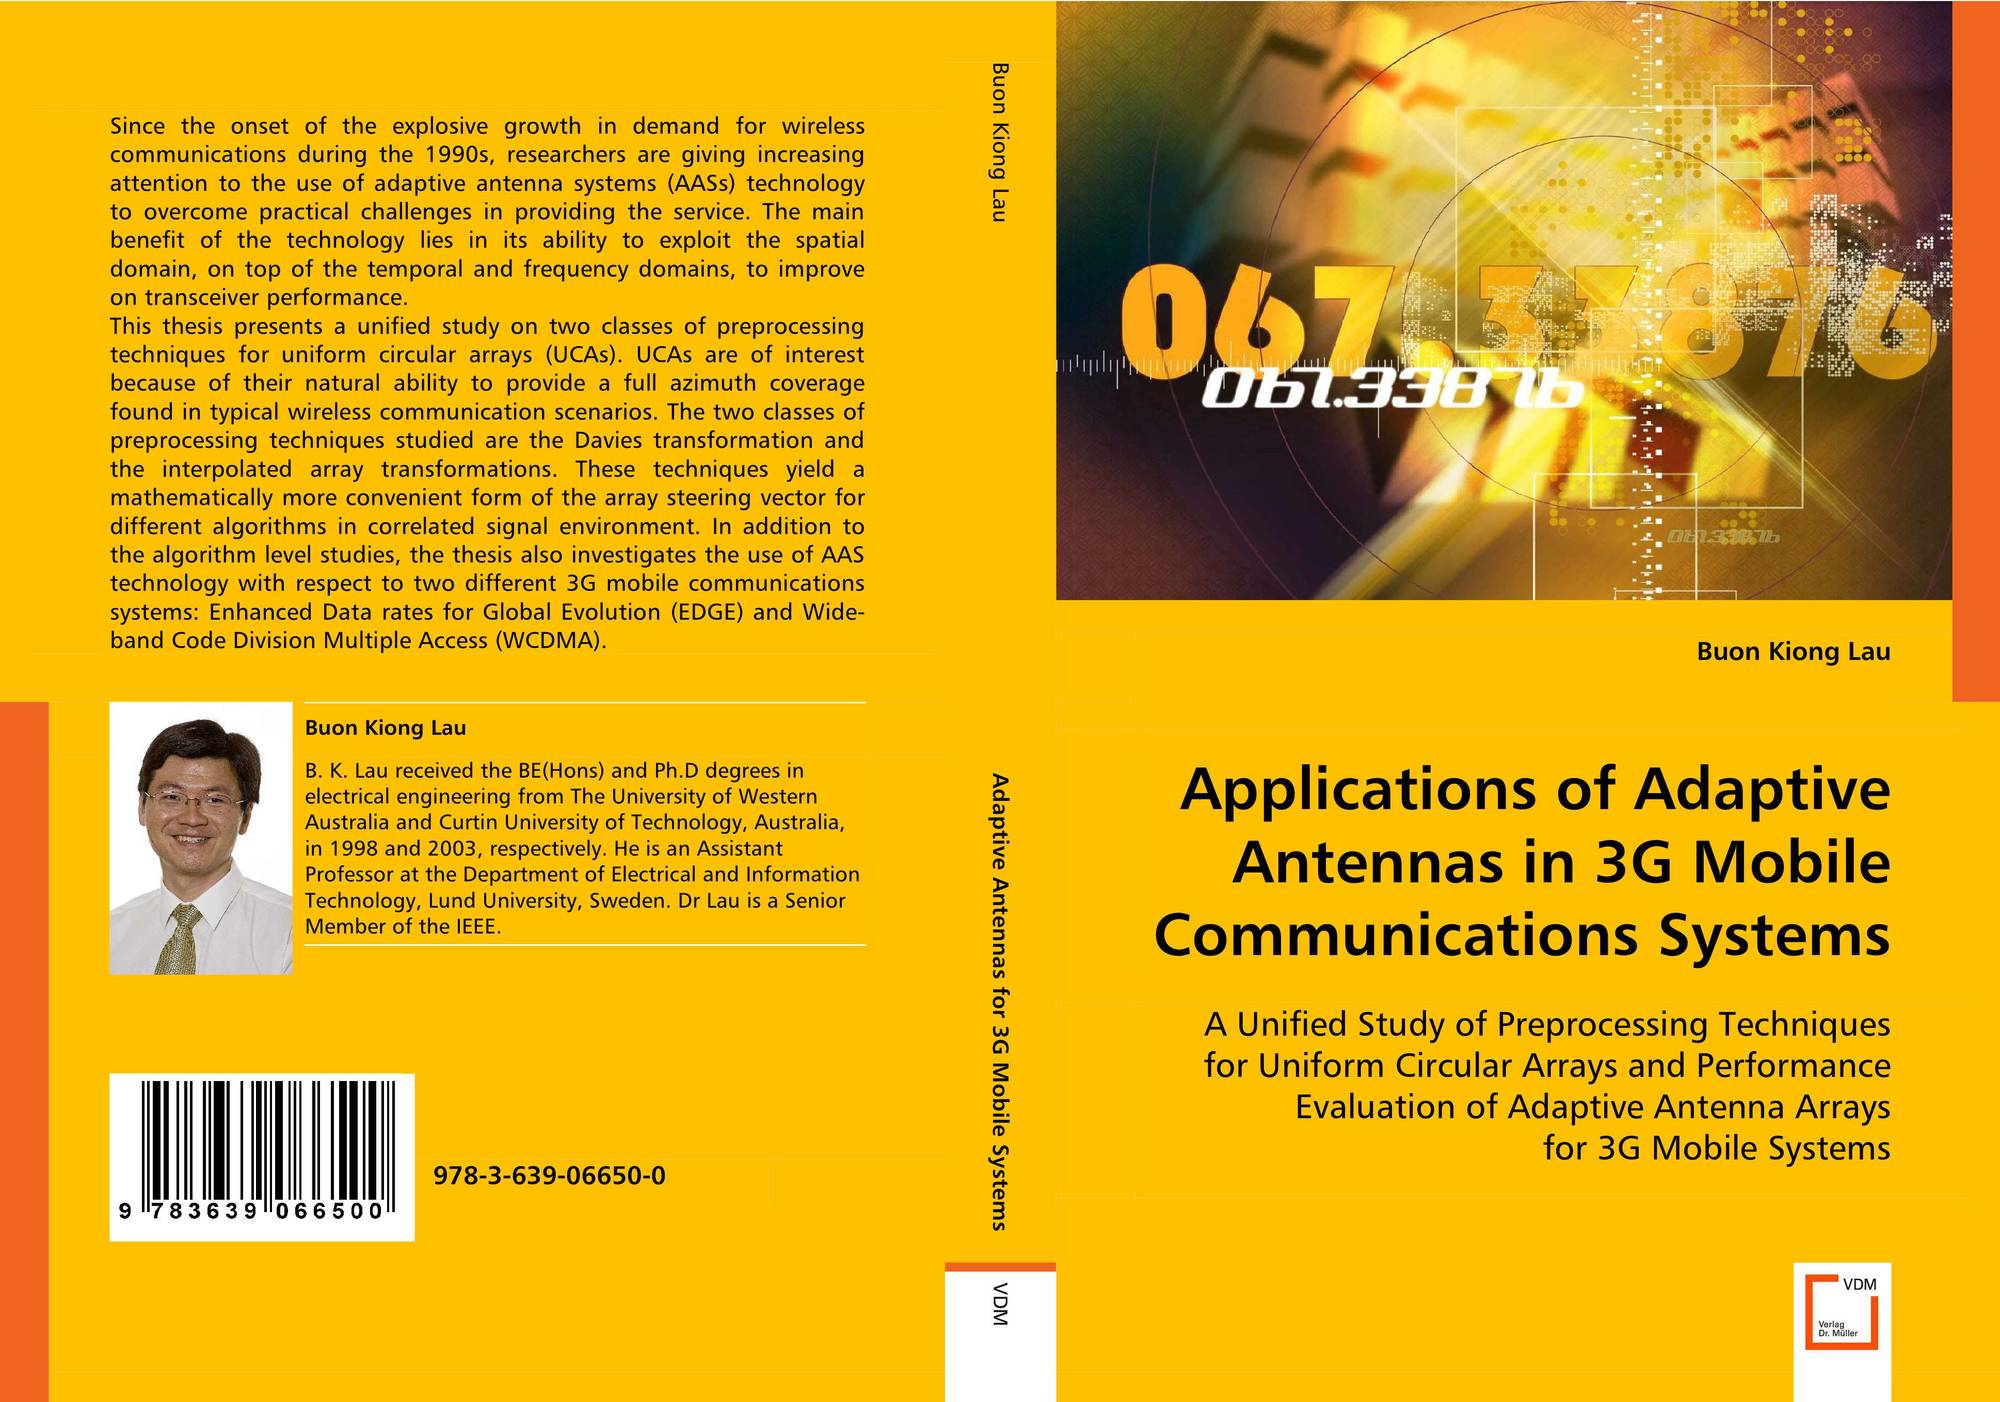 Applications of Adaptive Antennas in 3G Mobile Communications